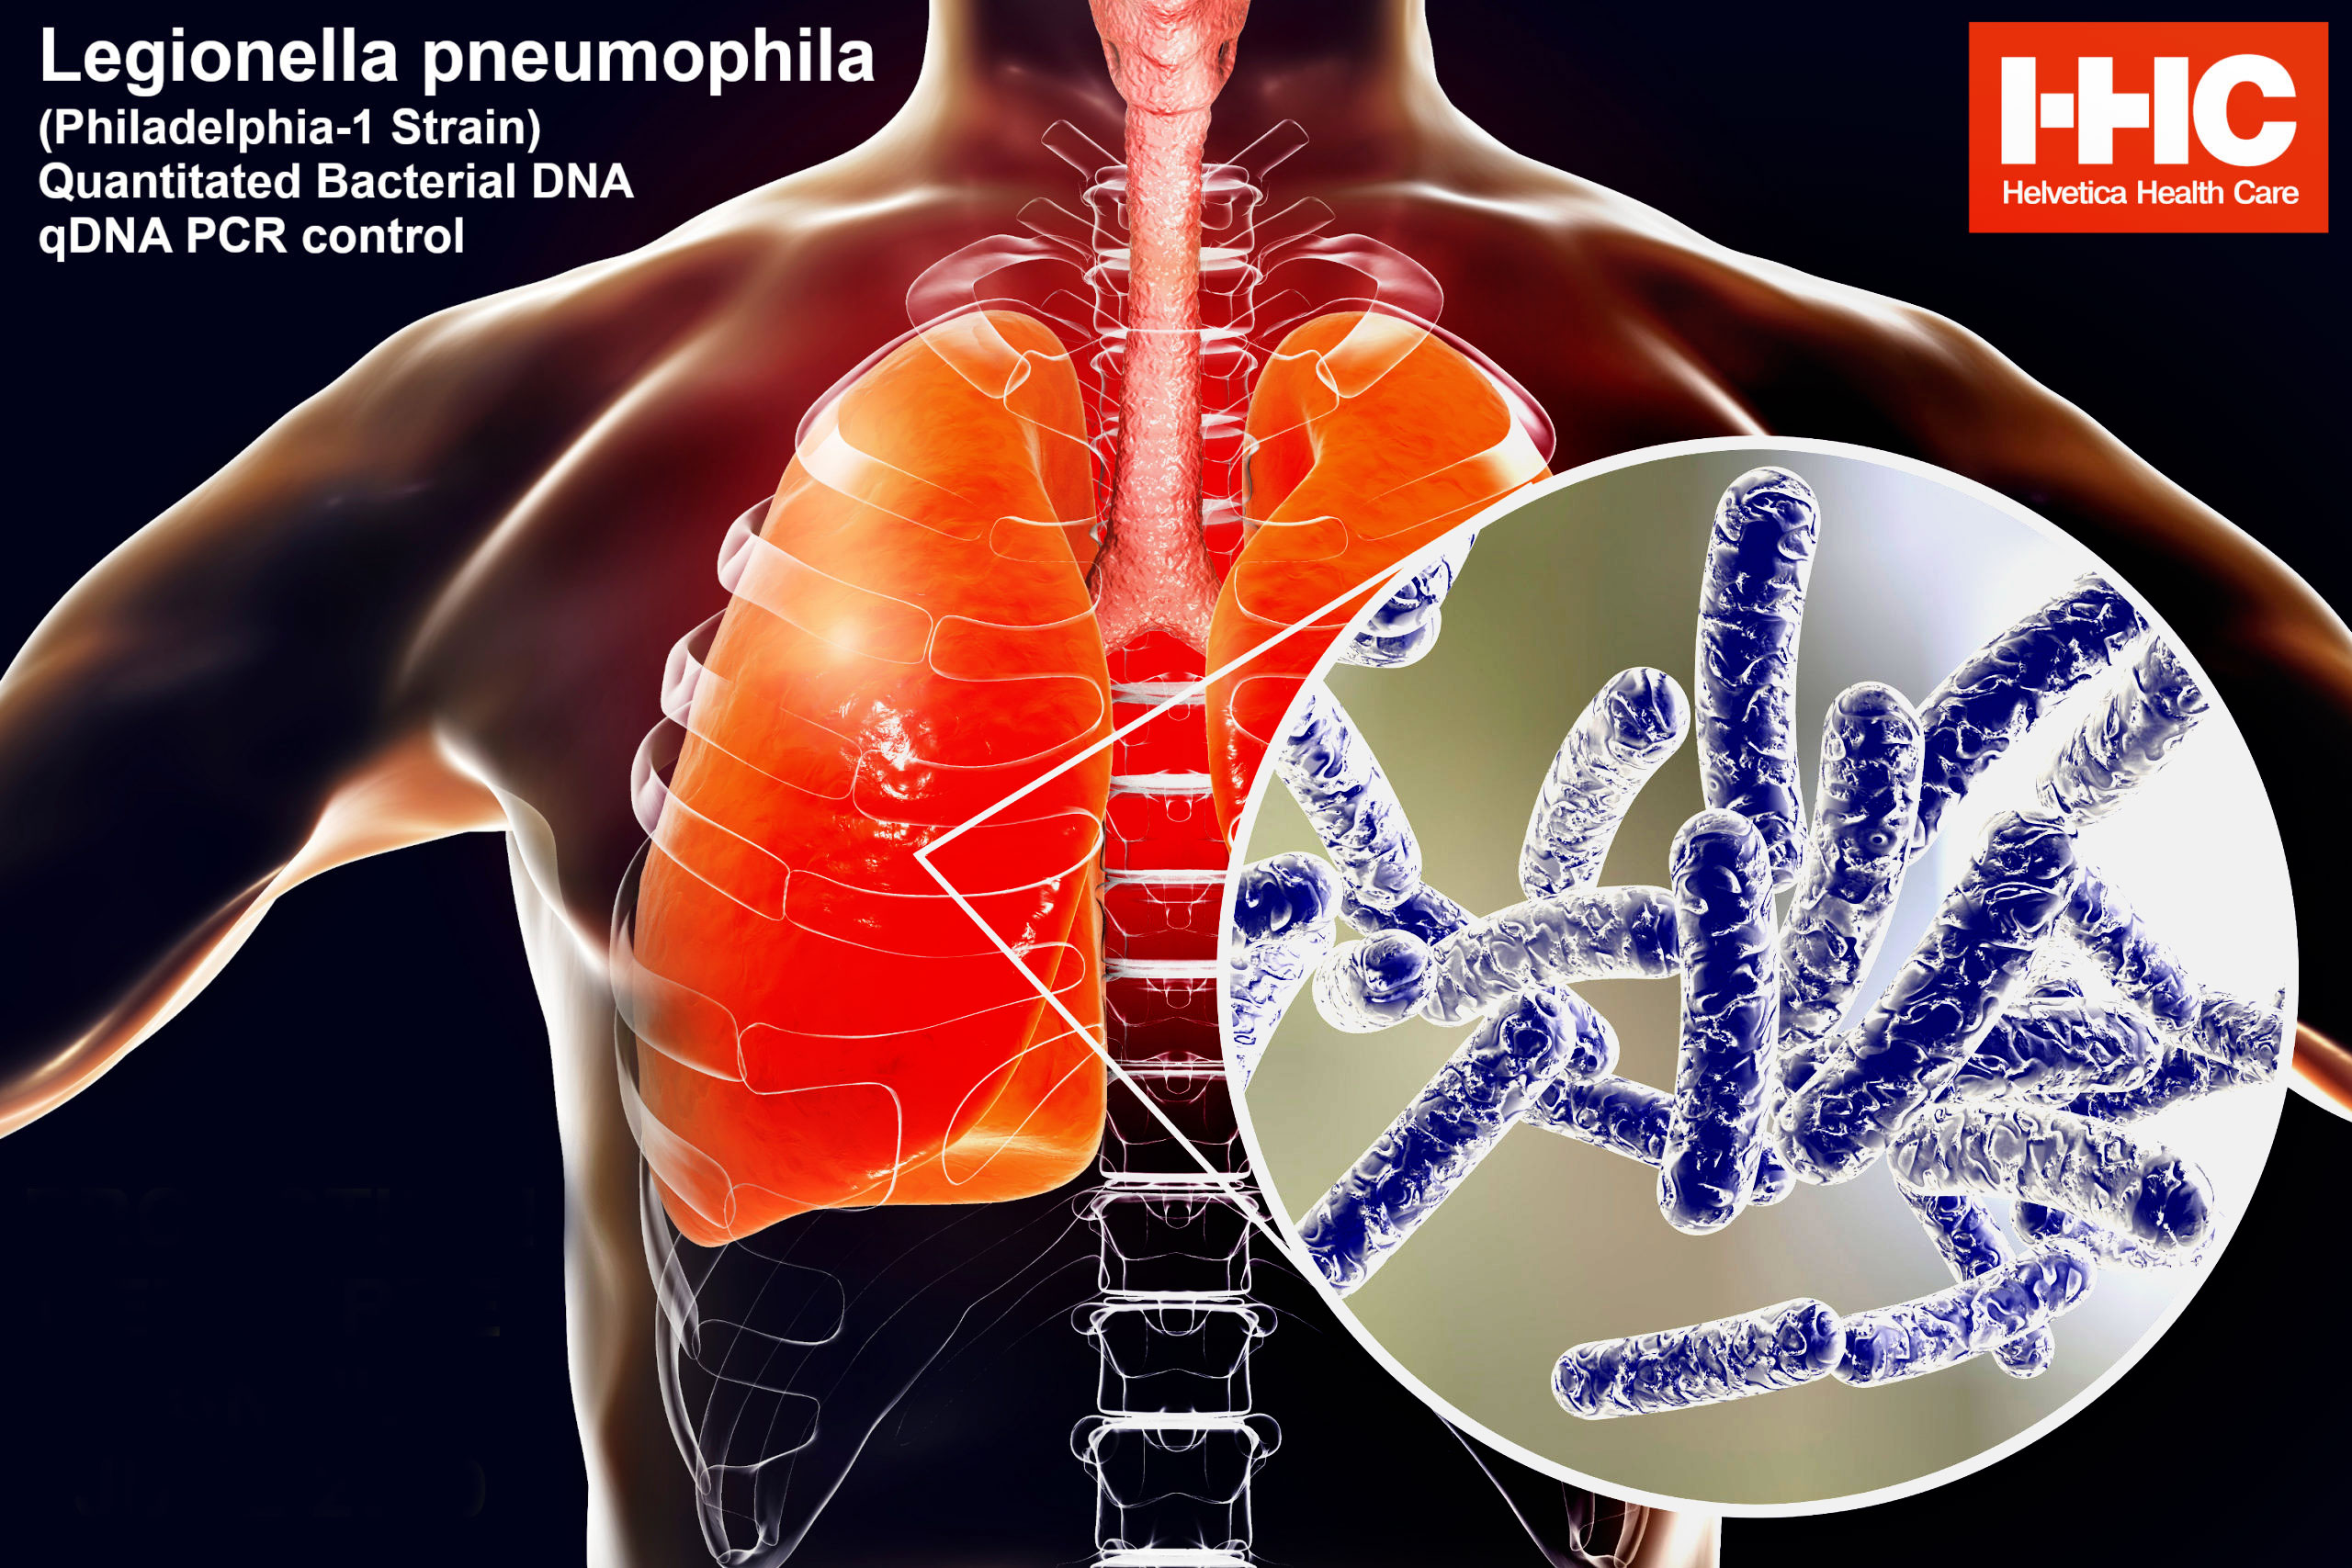 Legionella pneumophila shape and lives in the lungs